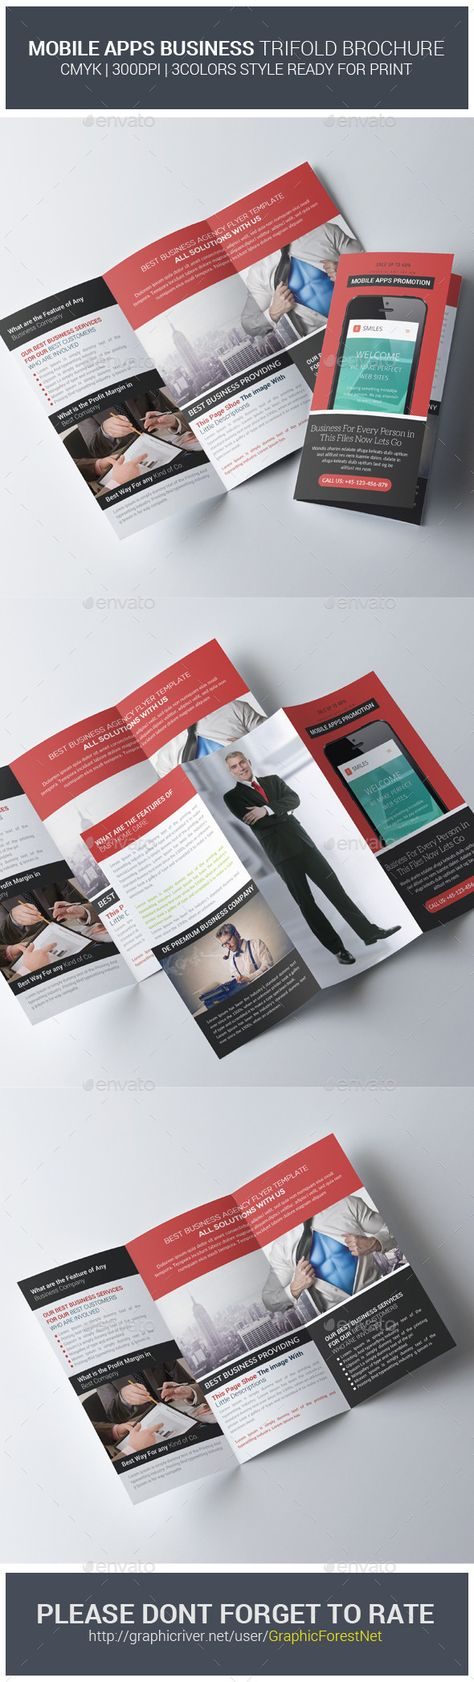 Apps Corporate Business Trifold Brochure Template PSD. Download here: http://graphicriver.net/item/apps-corporate-business-trifold-brochures/11309661?s_rank=1779&ref=yinkira